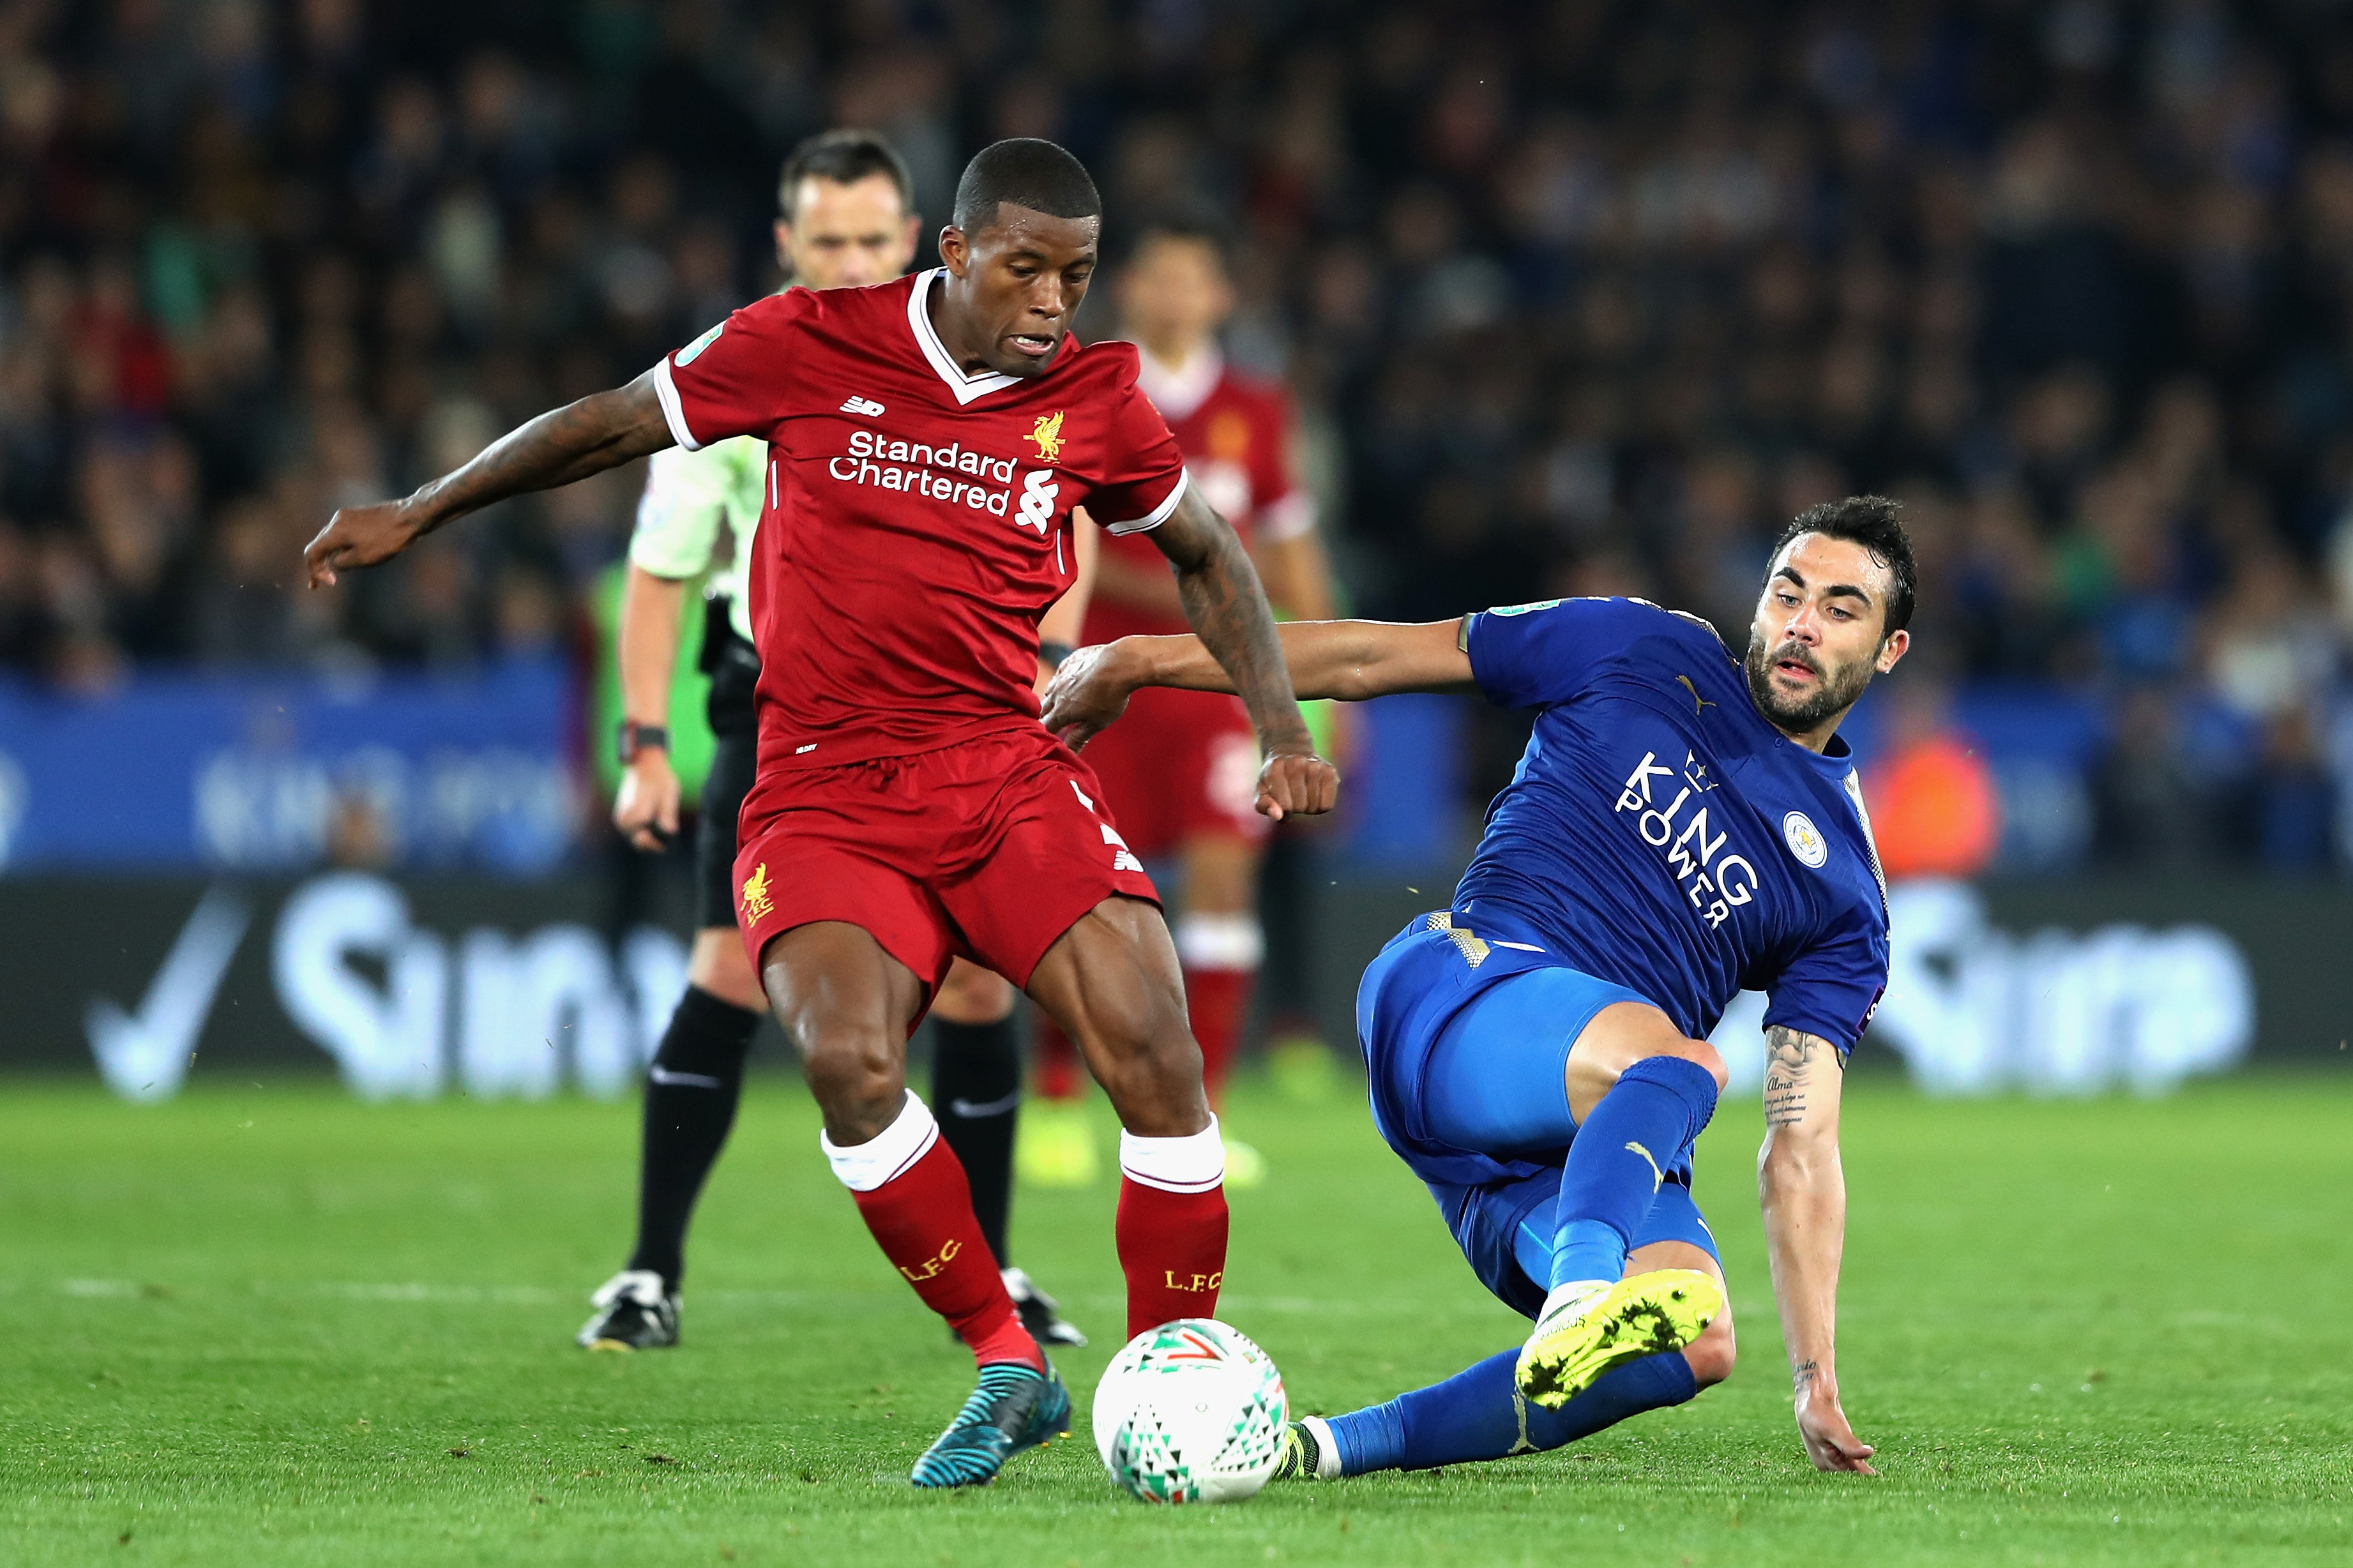 Leicester City 2-3 Liverpool: Reds win on the road